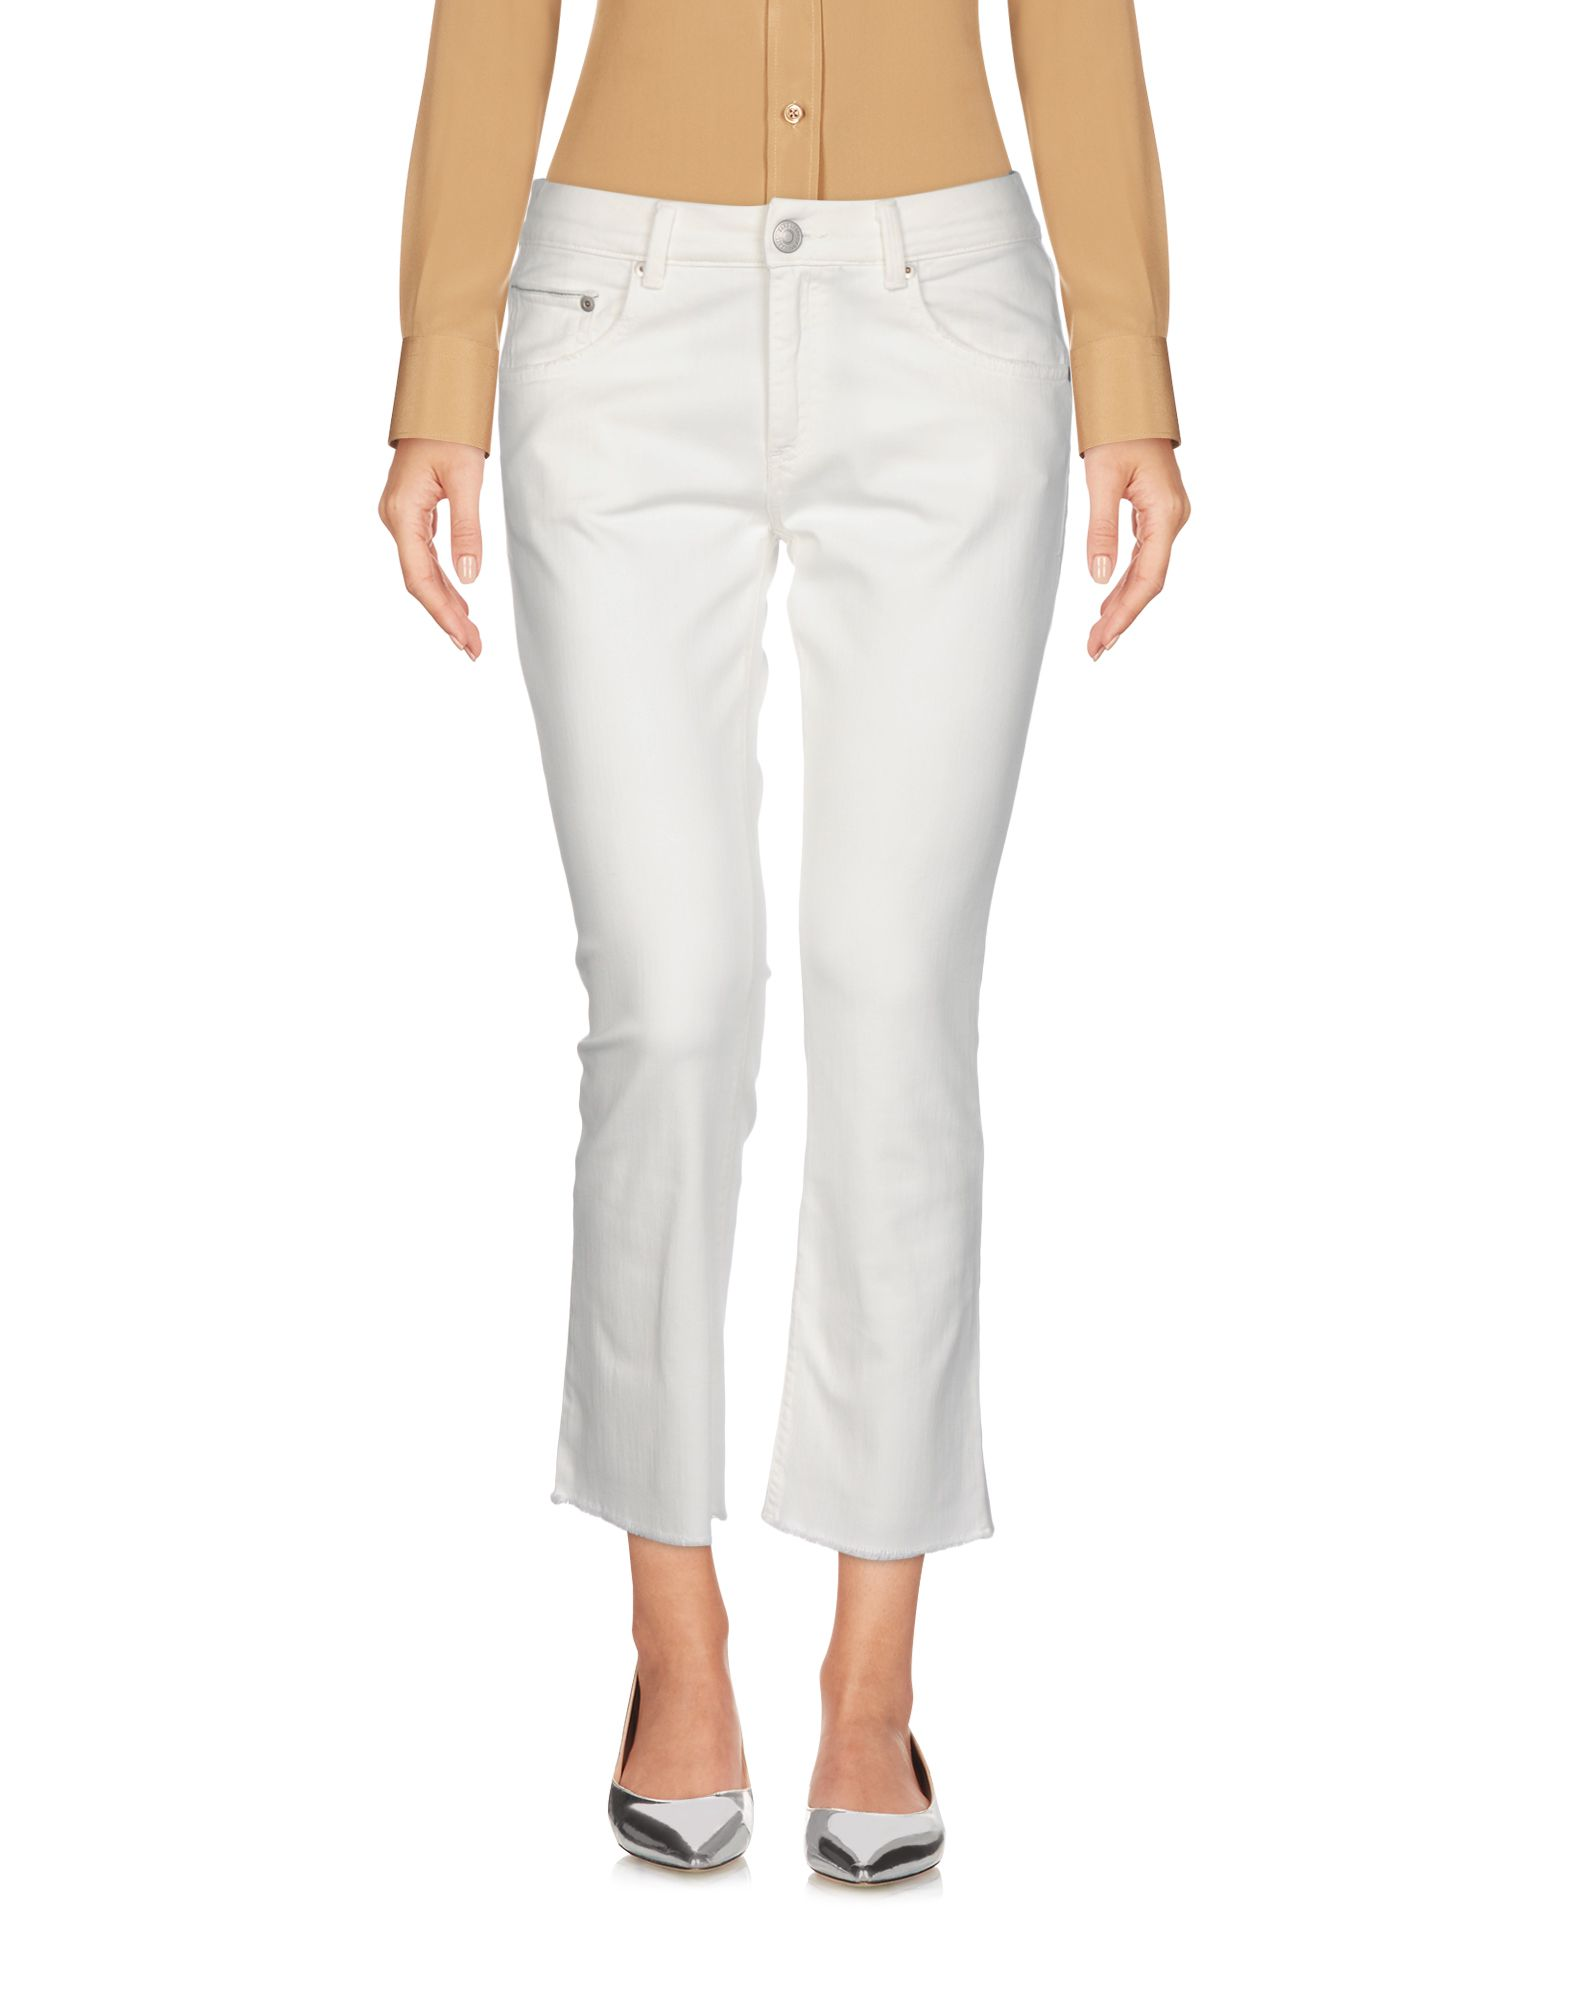 CARE LABEL Cropped Pants & Culottes in Ivory